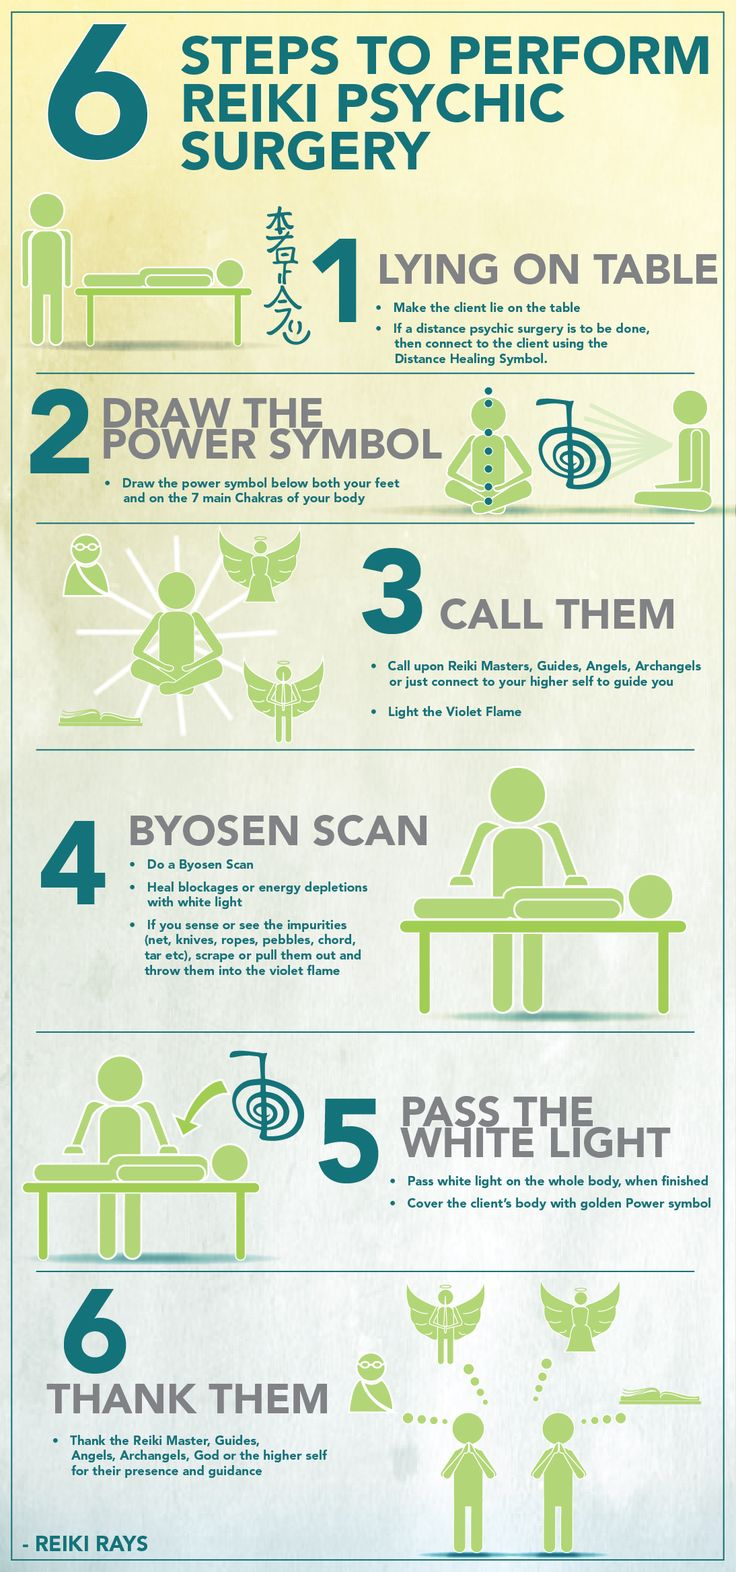 6 Steps to Perform Reiki Psychic Surgery